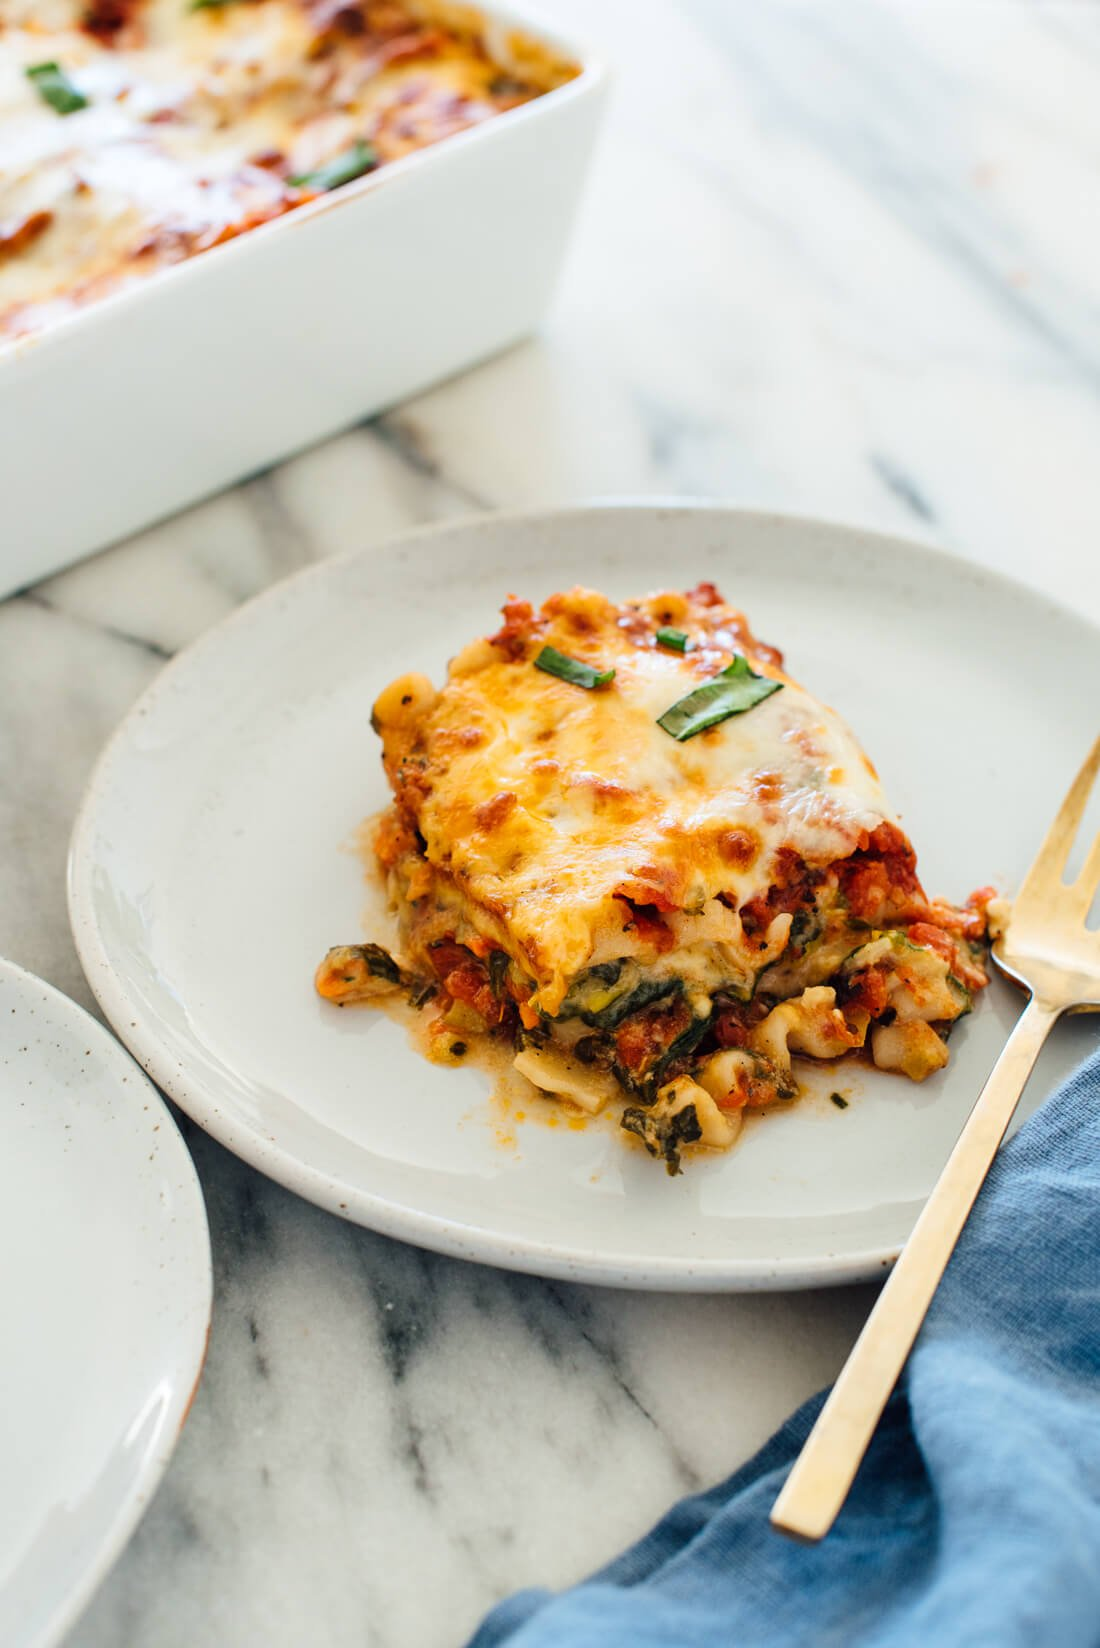 My favorite vegetable lasagna recipe, made with zucchini, bell pepper, carrots and spinach! No one will miss the meat in this #vegetarian #lasagna.